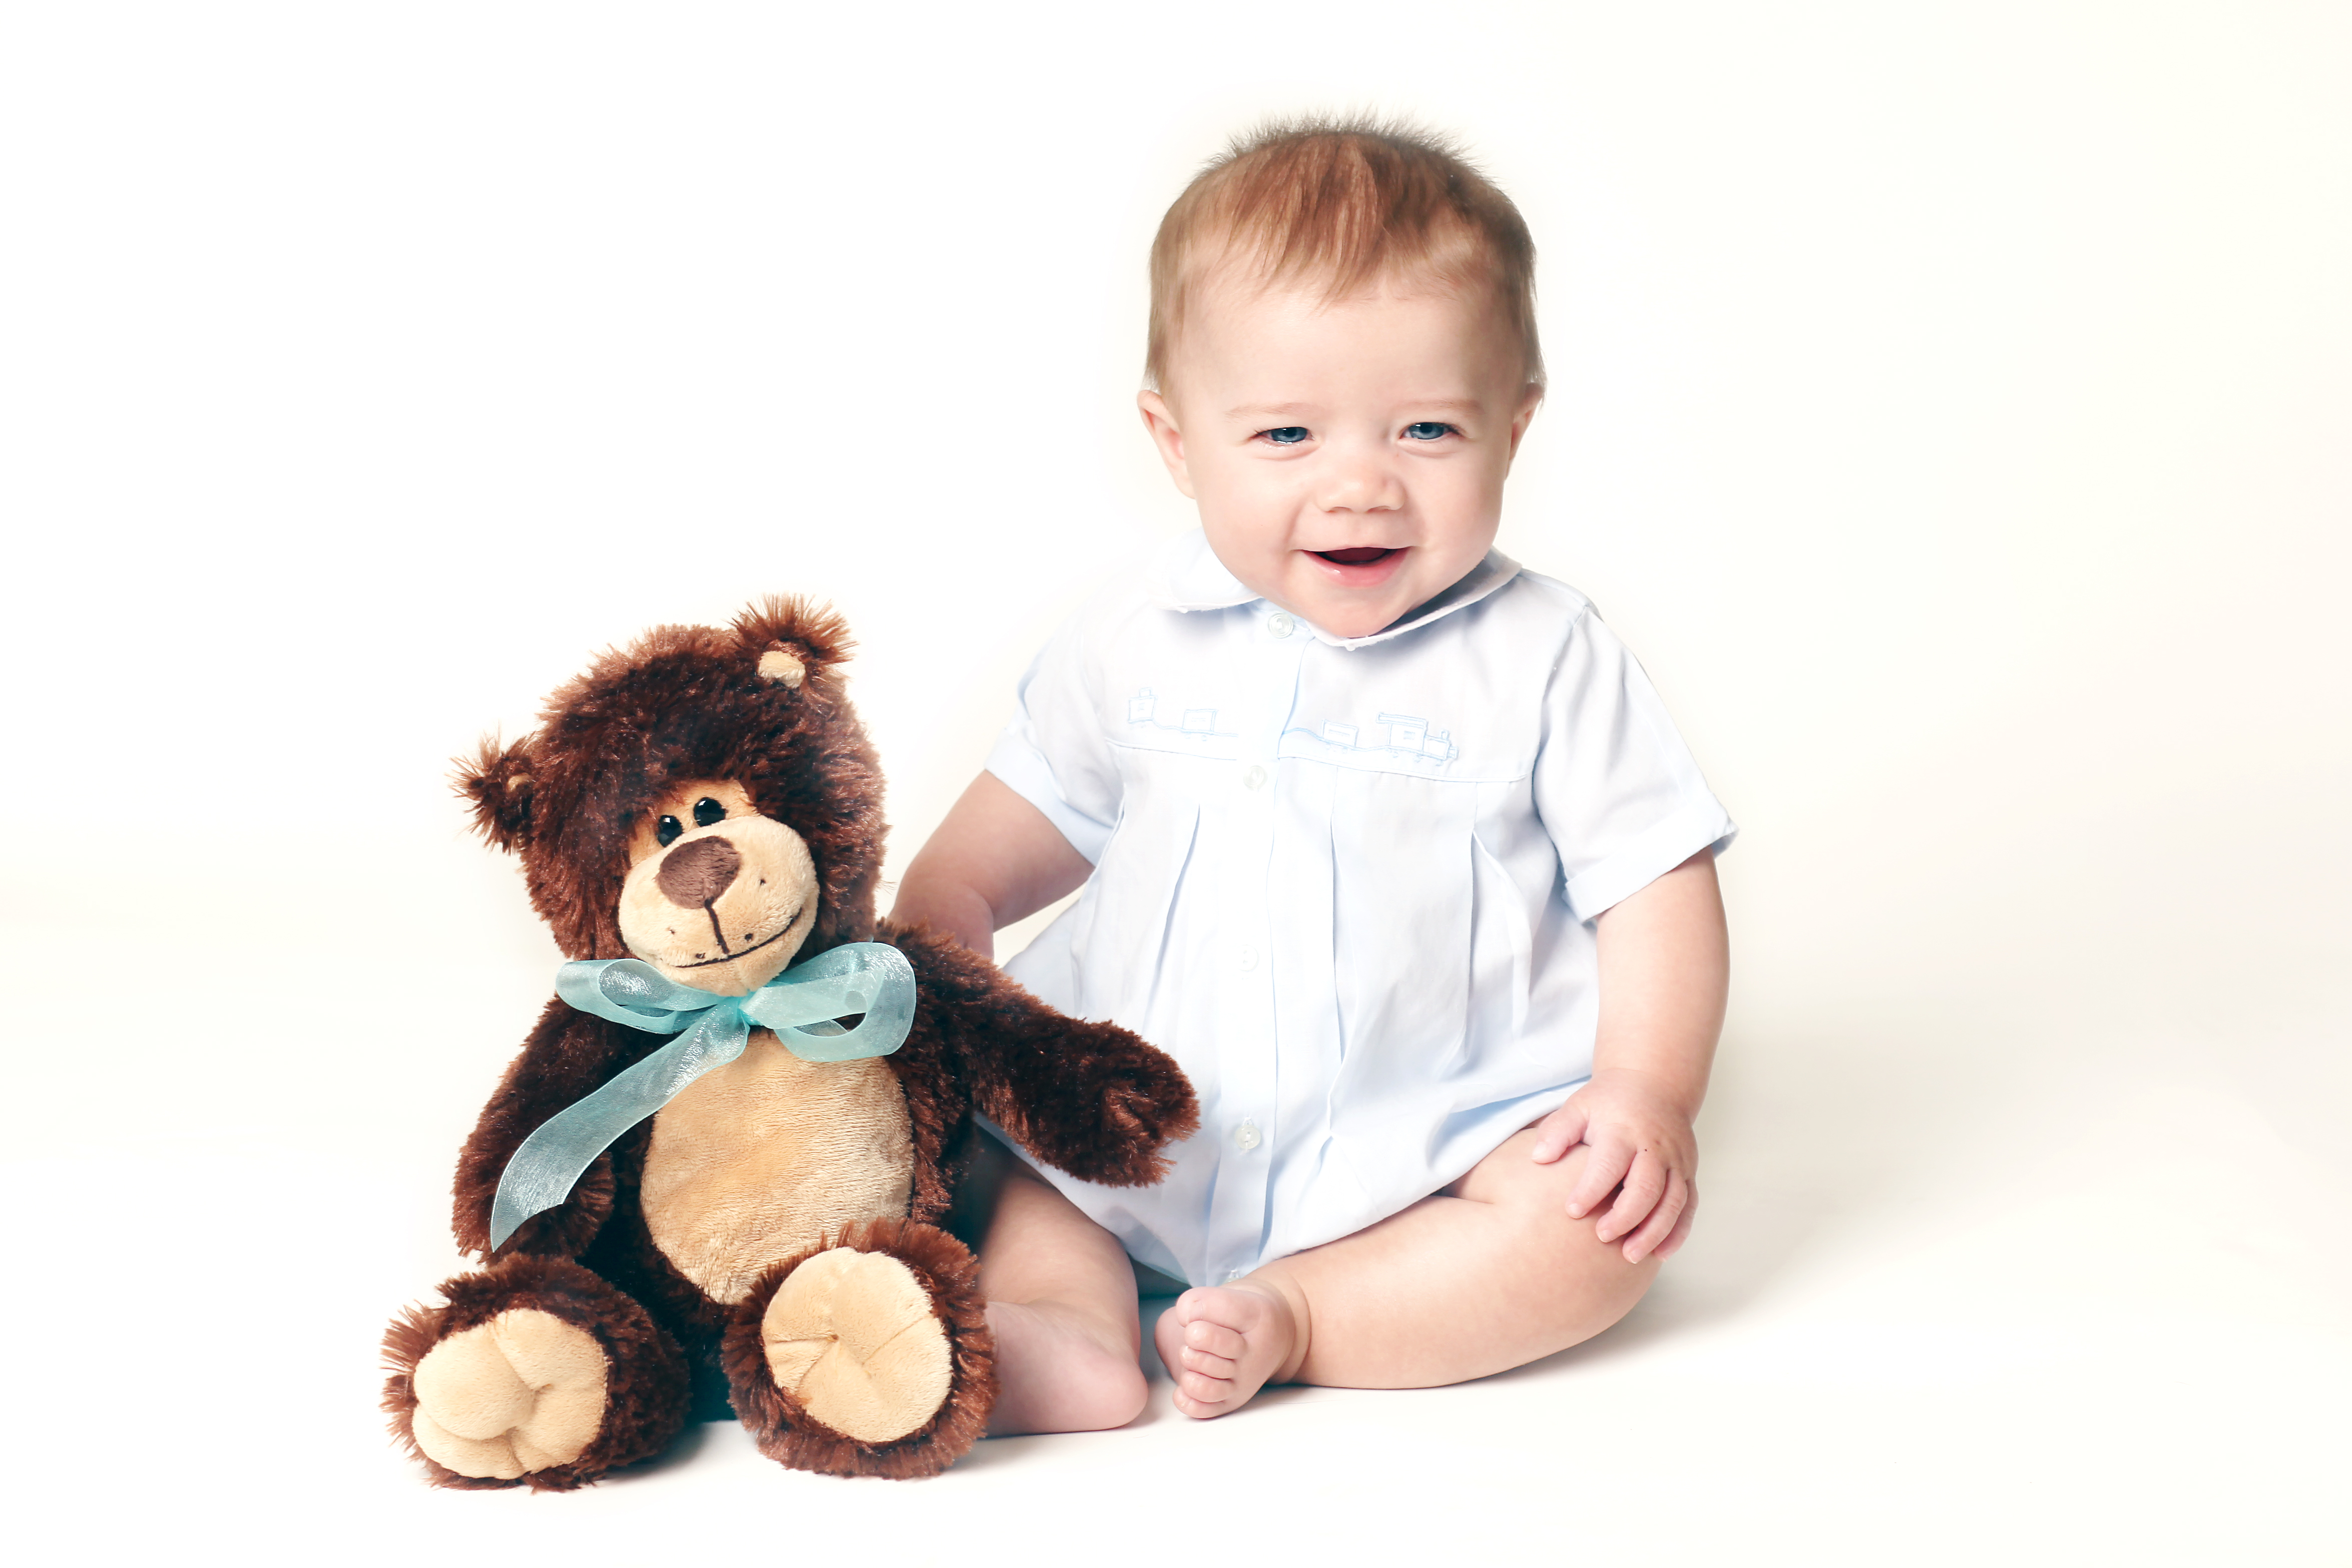 Henry with bear